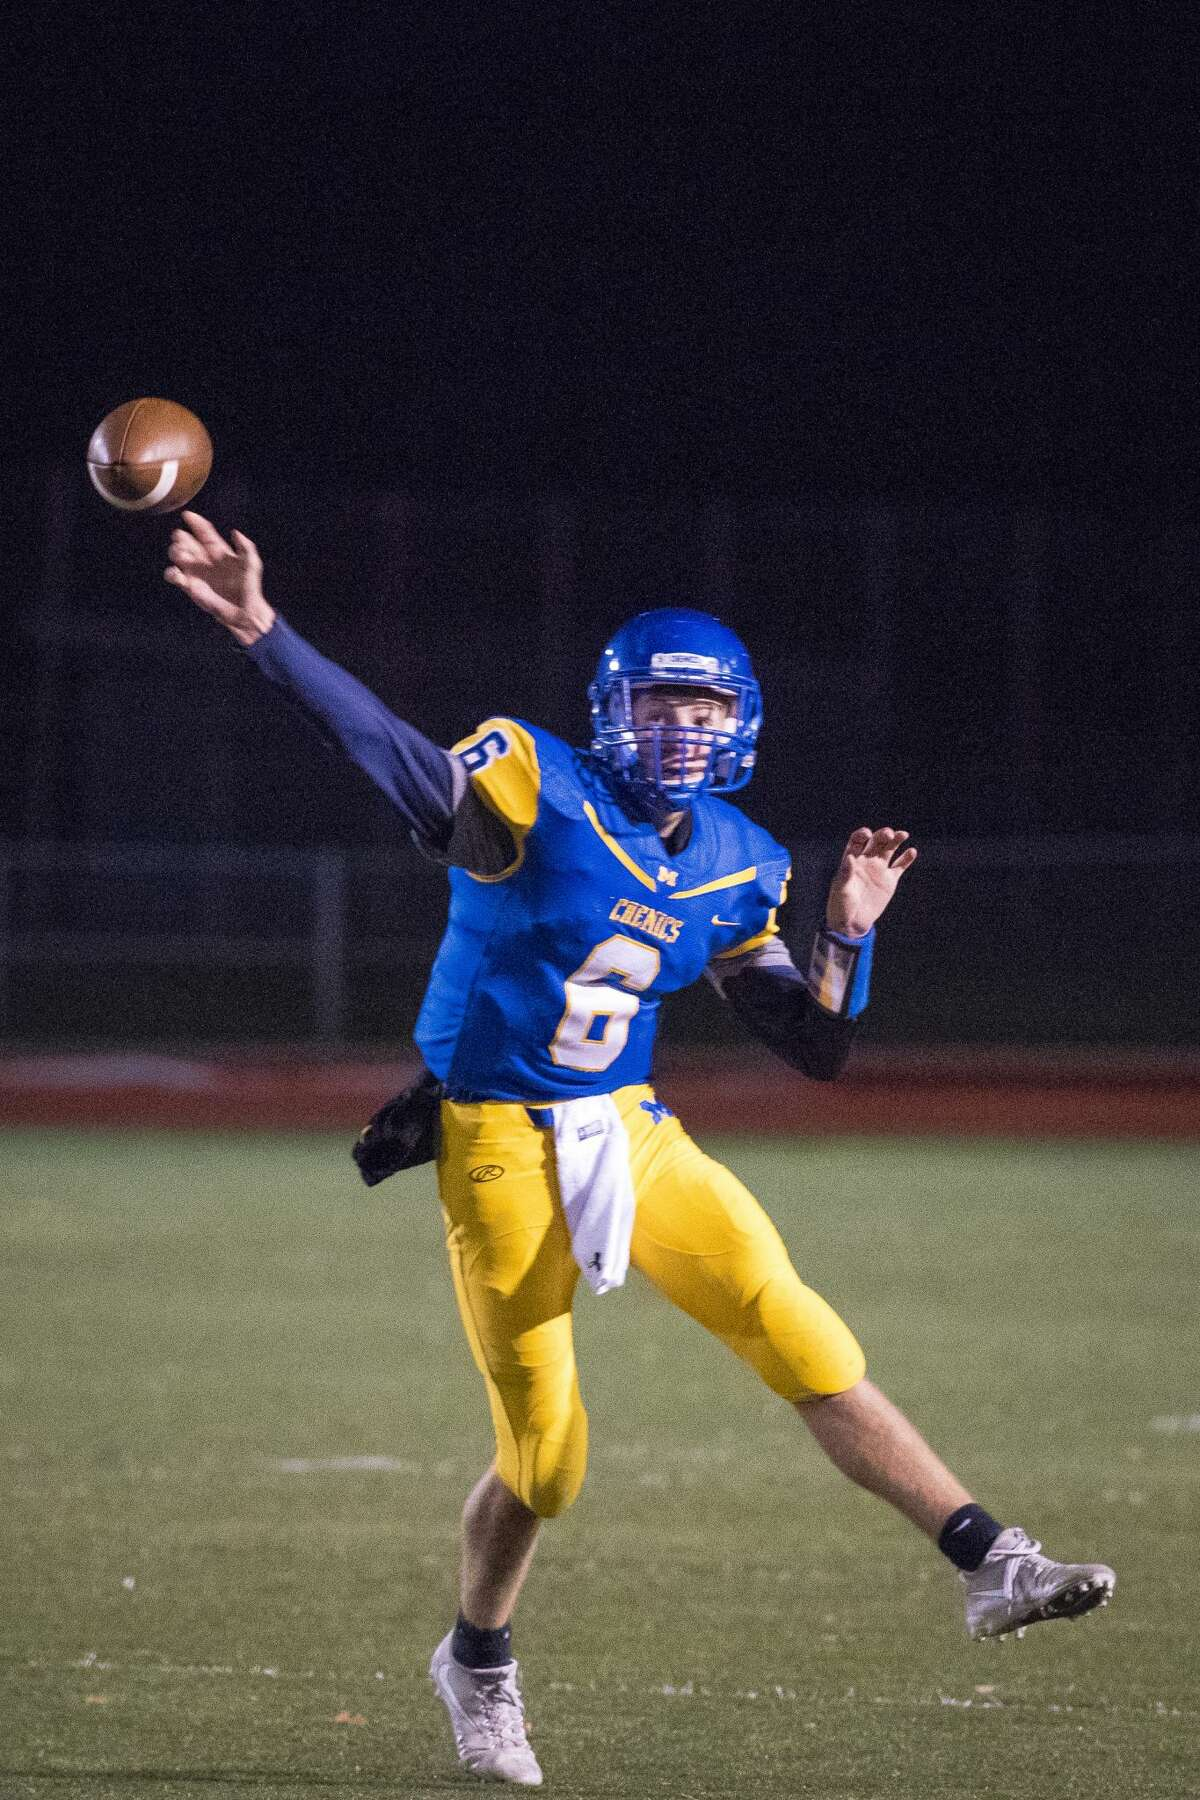 Midland quarterback, senior Cade Methner, throws a pass during the district semifinals against Traverse City Central on Friday, Oct. 27, 2017 in Midland. (Danielle McGrew Tenbusch/for the Daily News)